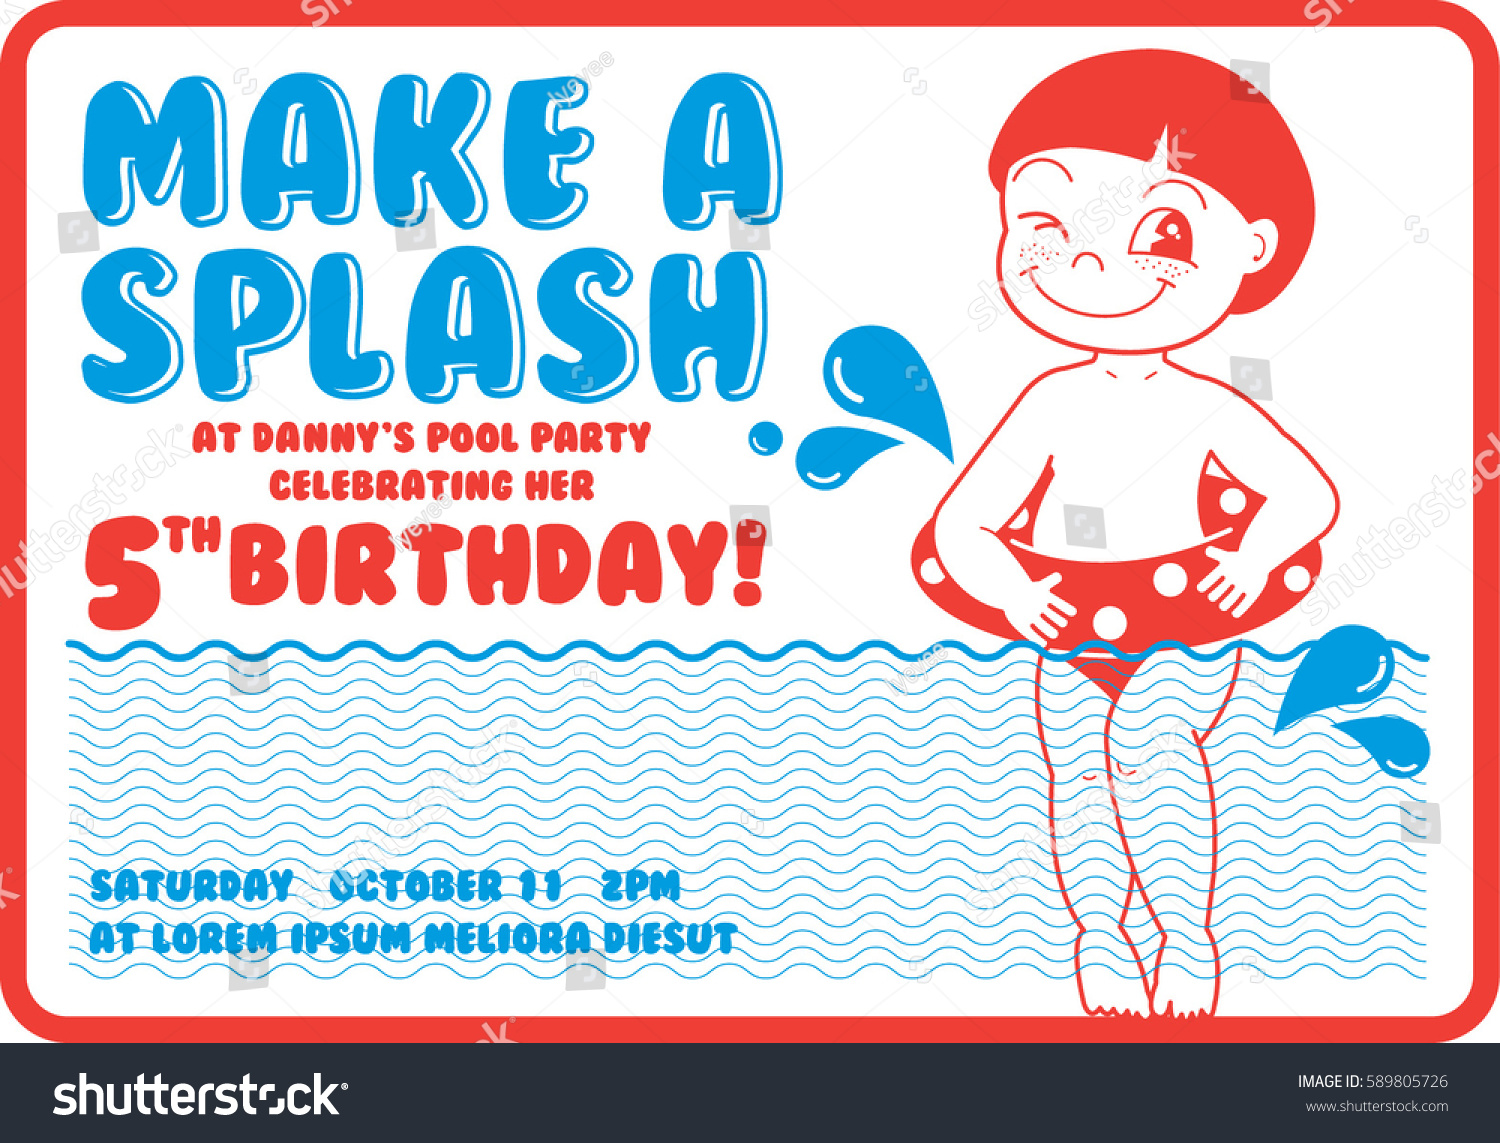 Vintage Birthday Pool Party Invitation Card Stock Vector 2018